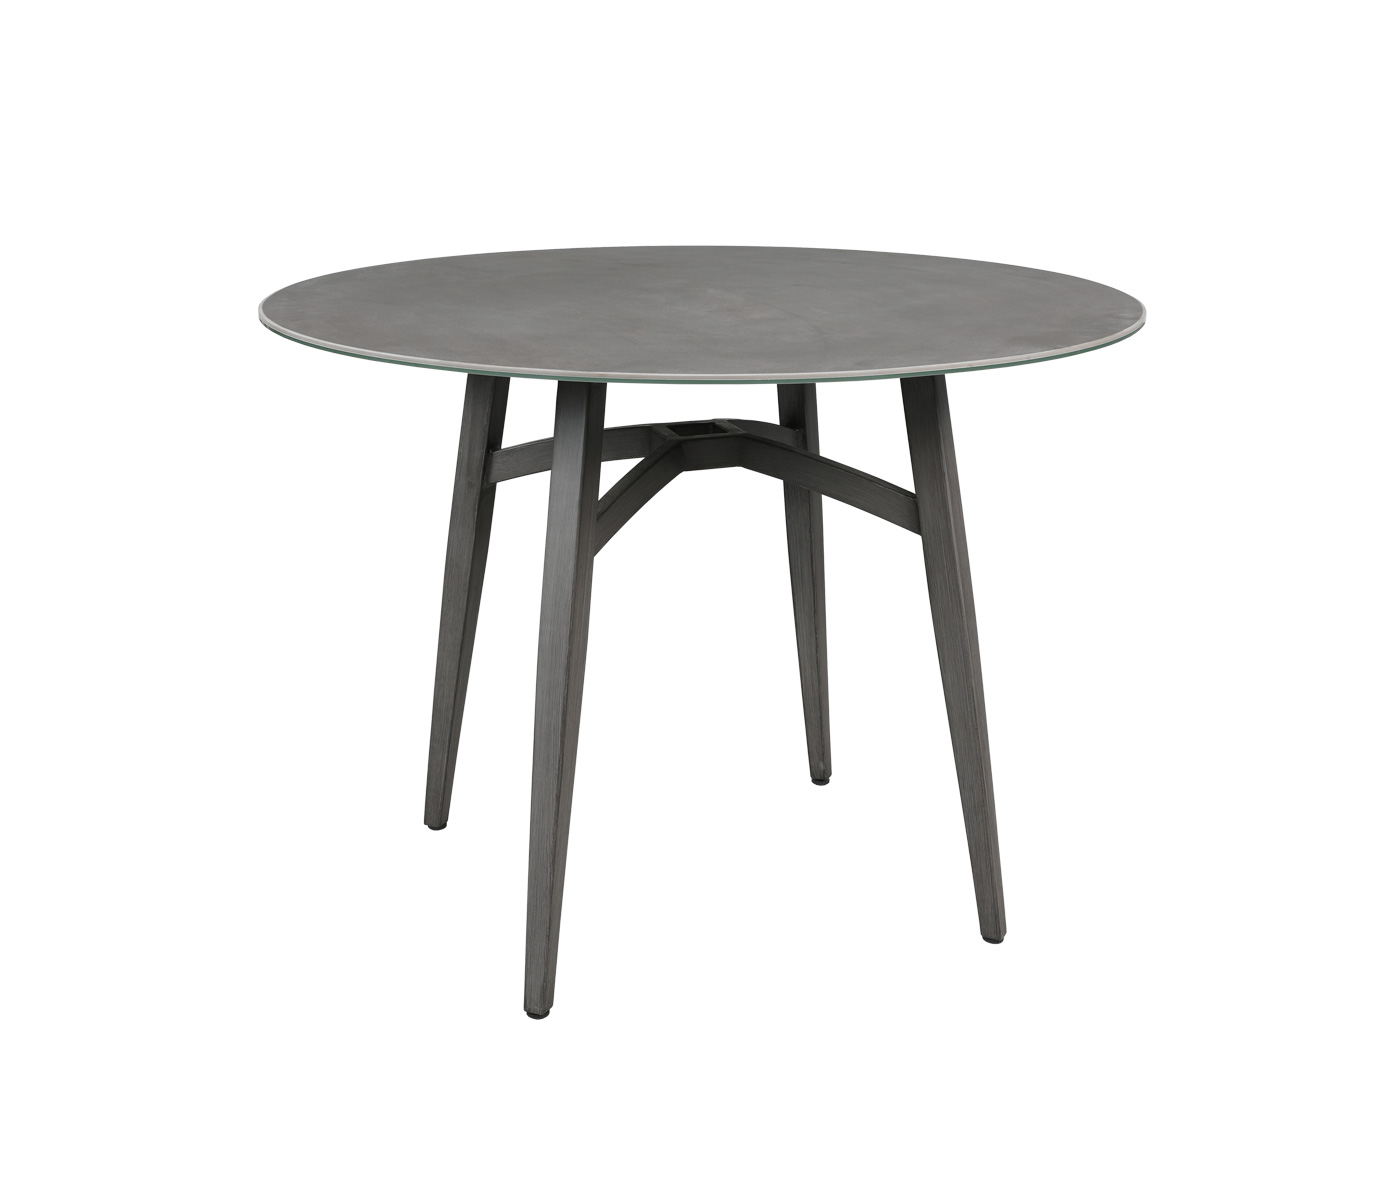 Gramercy Ceramic 40 Round Dining Table Patio Palace